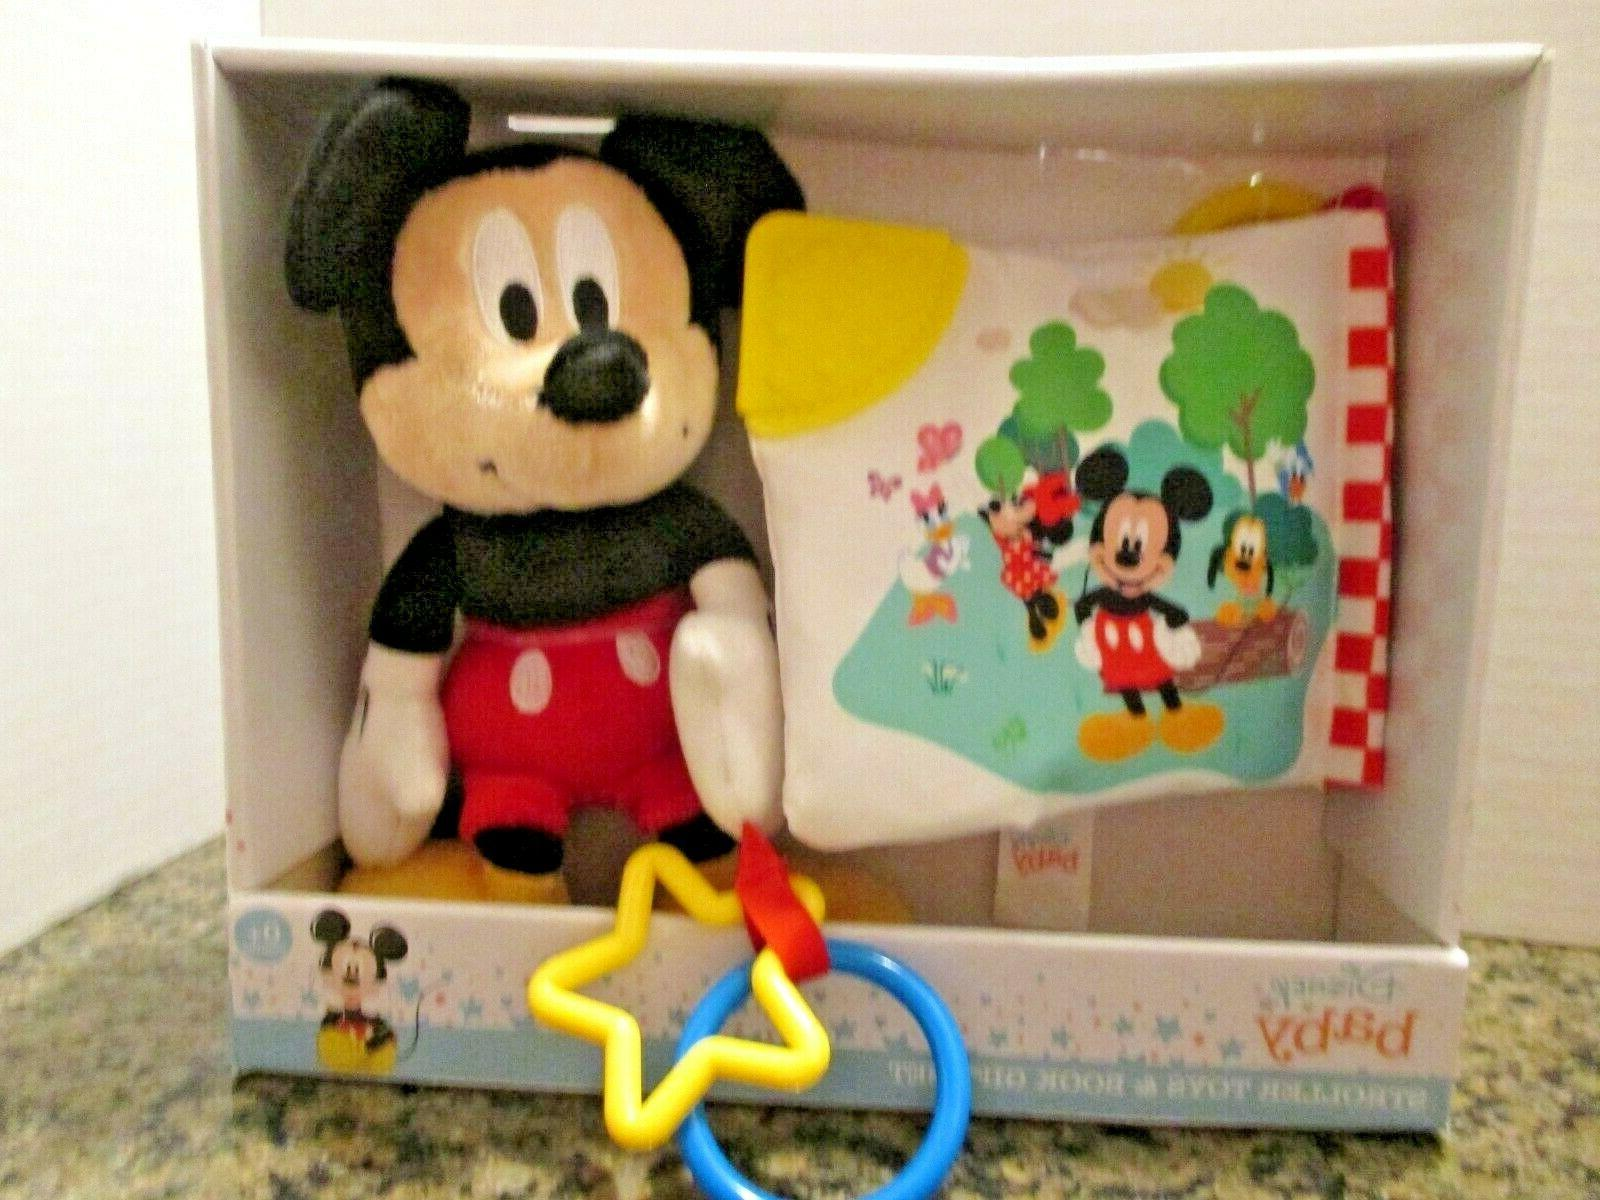 baby stroller toys and book gift set